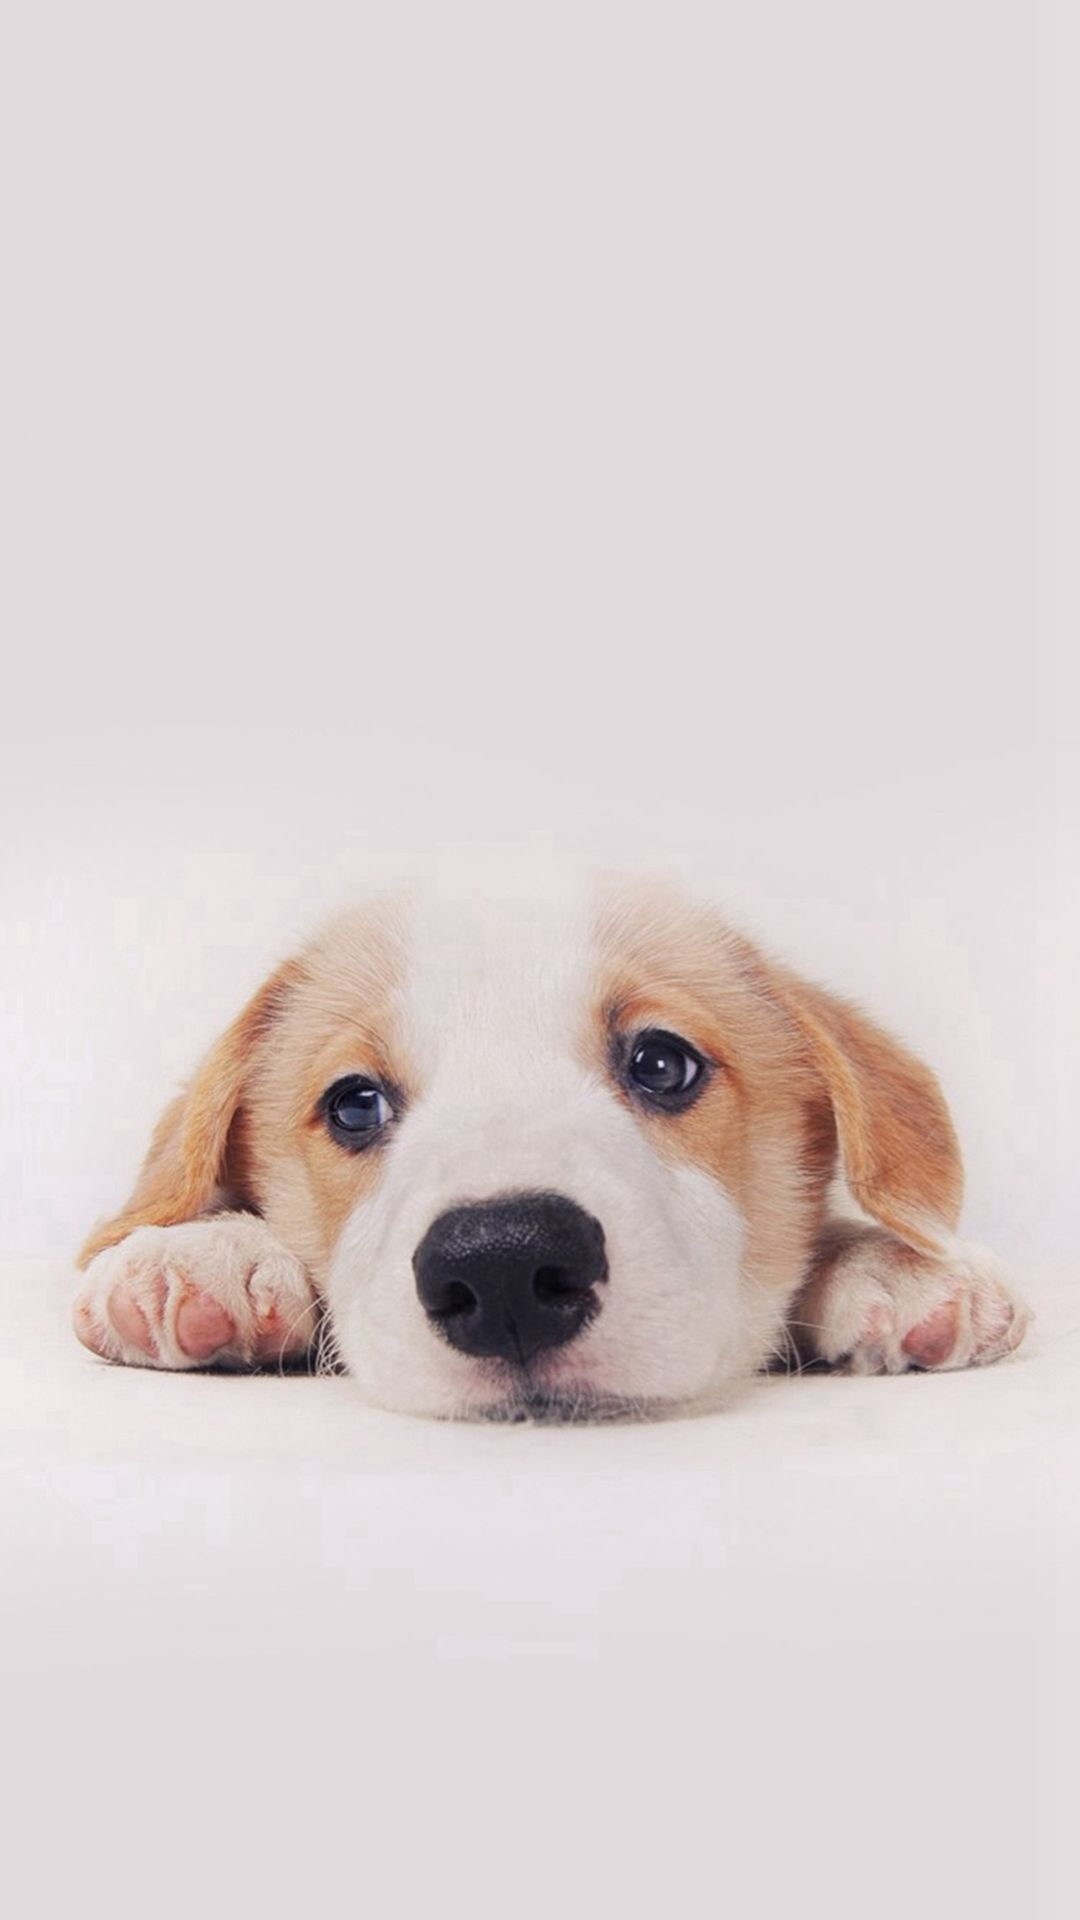 Cute Puppy Dog Pet Iphone 6 Plus Wallpaper Iphone 6 8